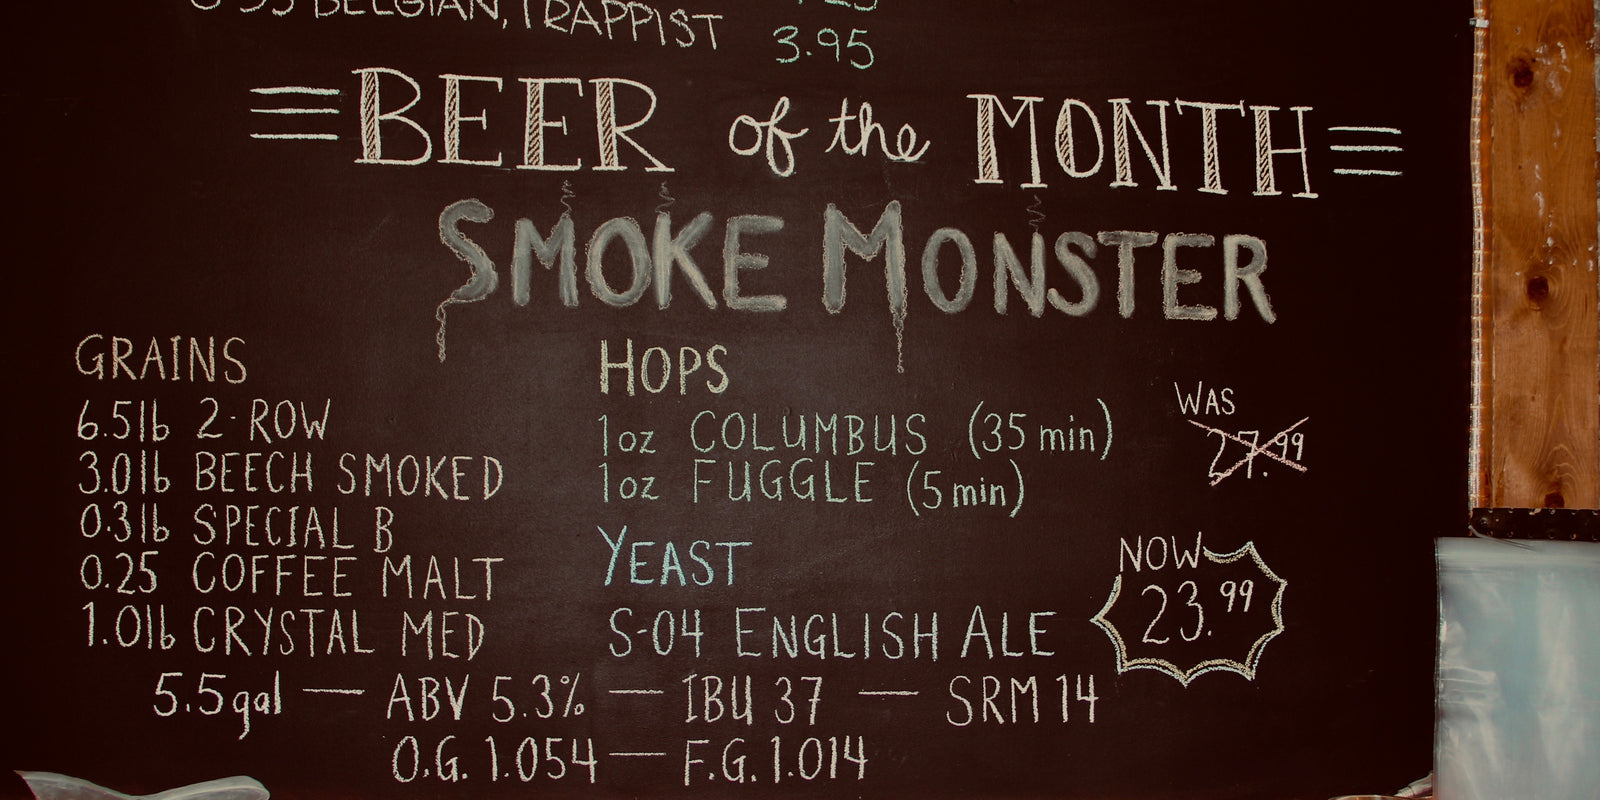 Beer of the Month Tagged